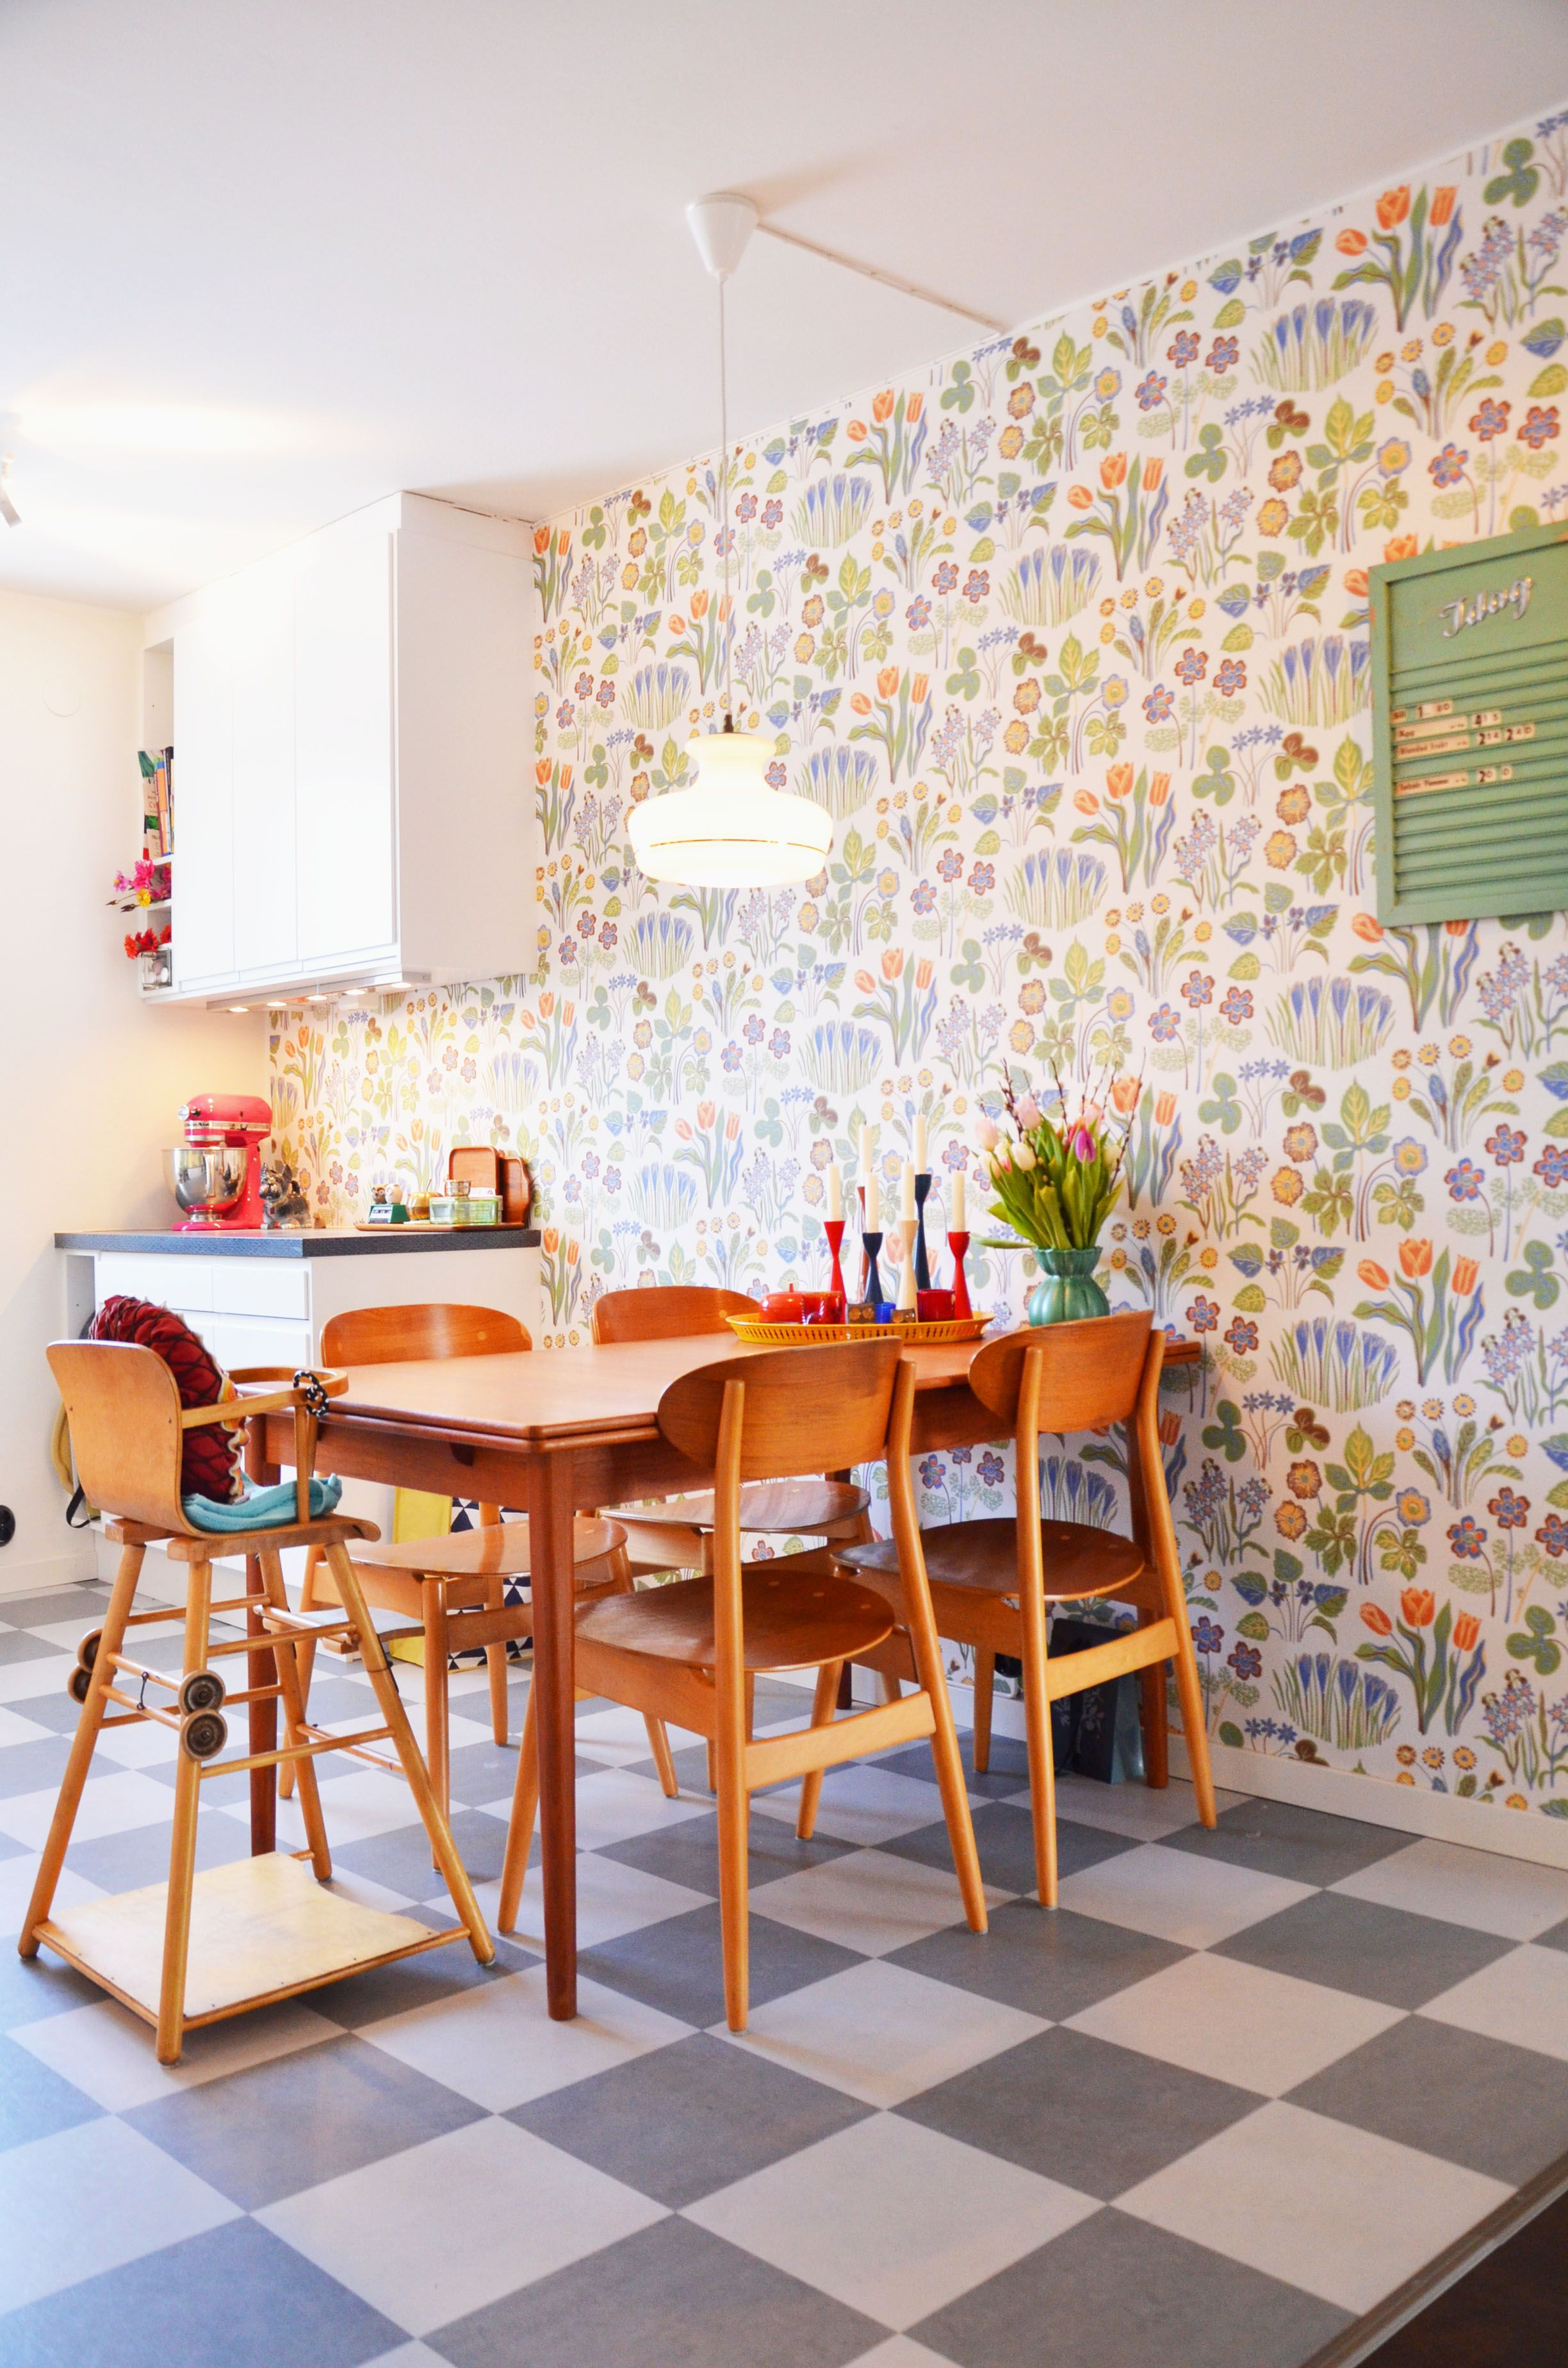 josef frank wallpaper and totally adorable table and